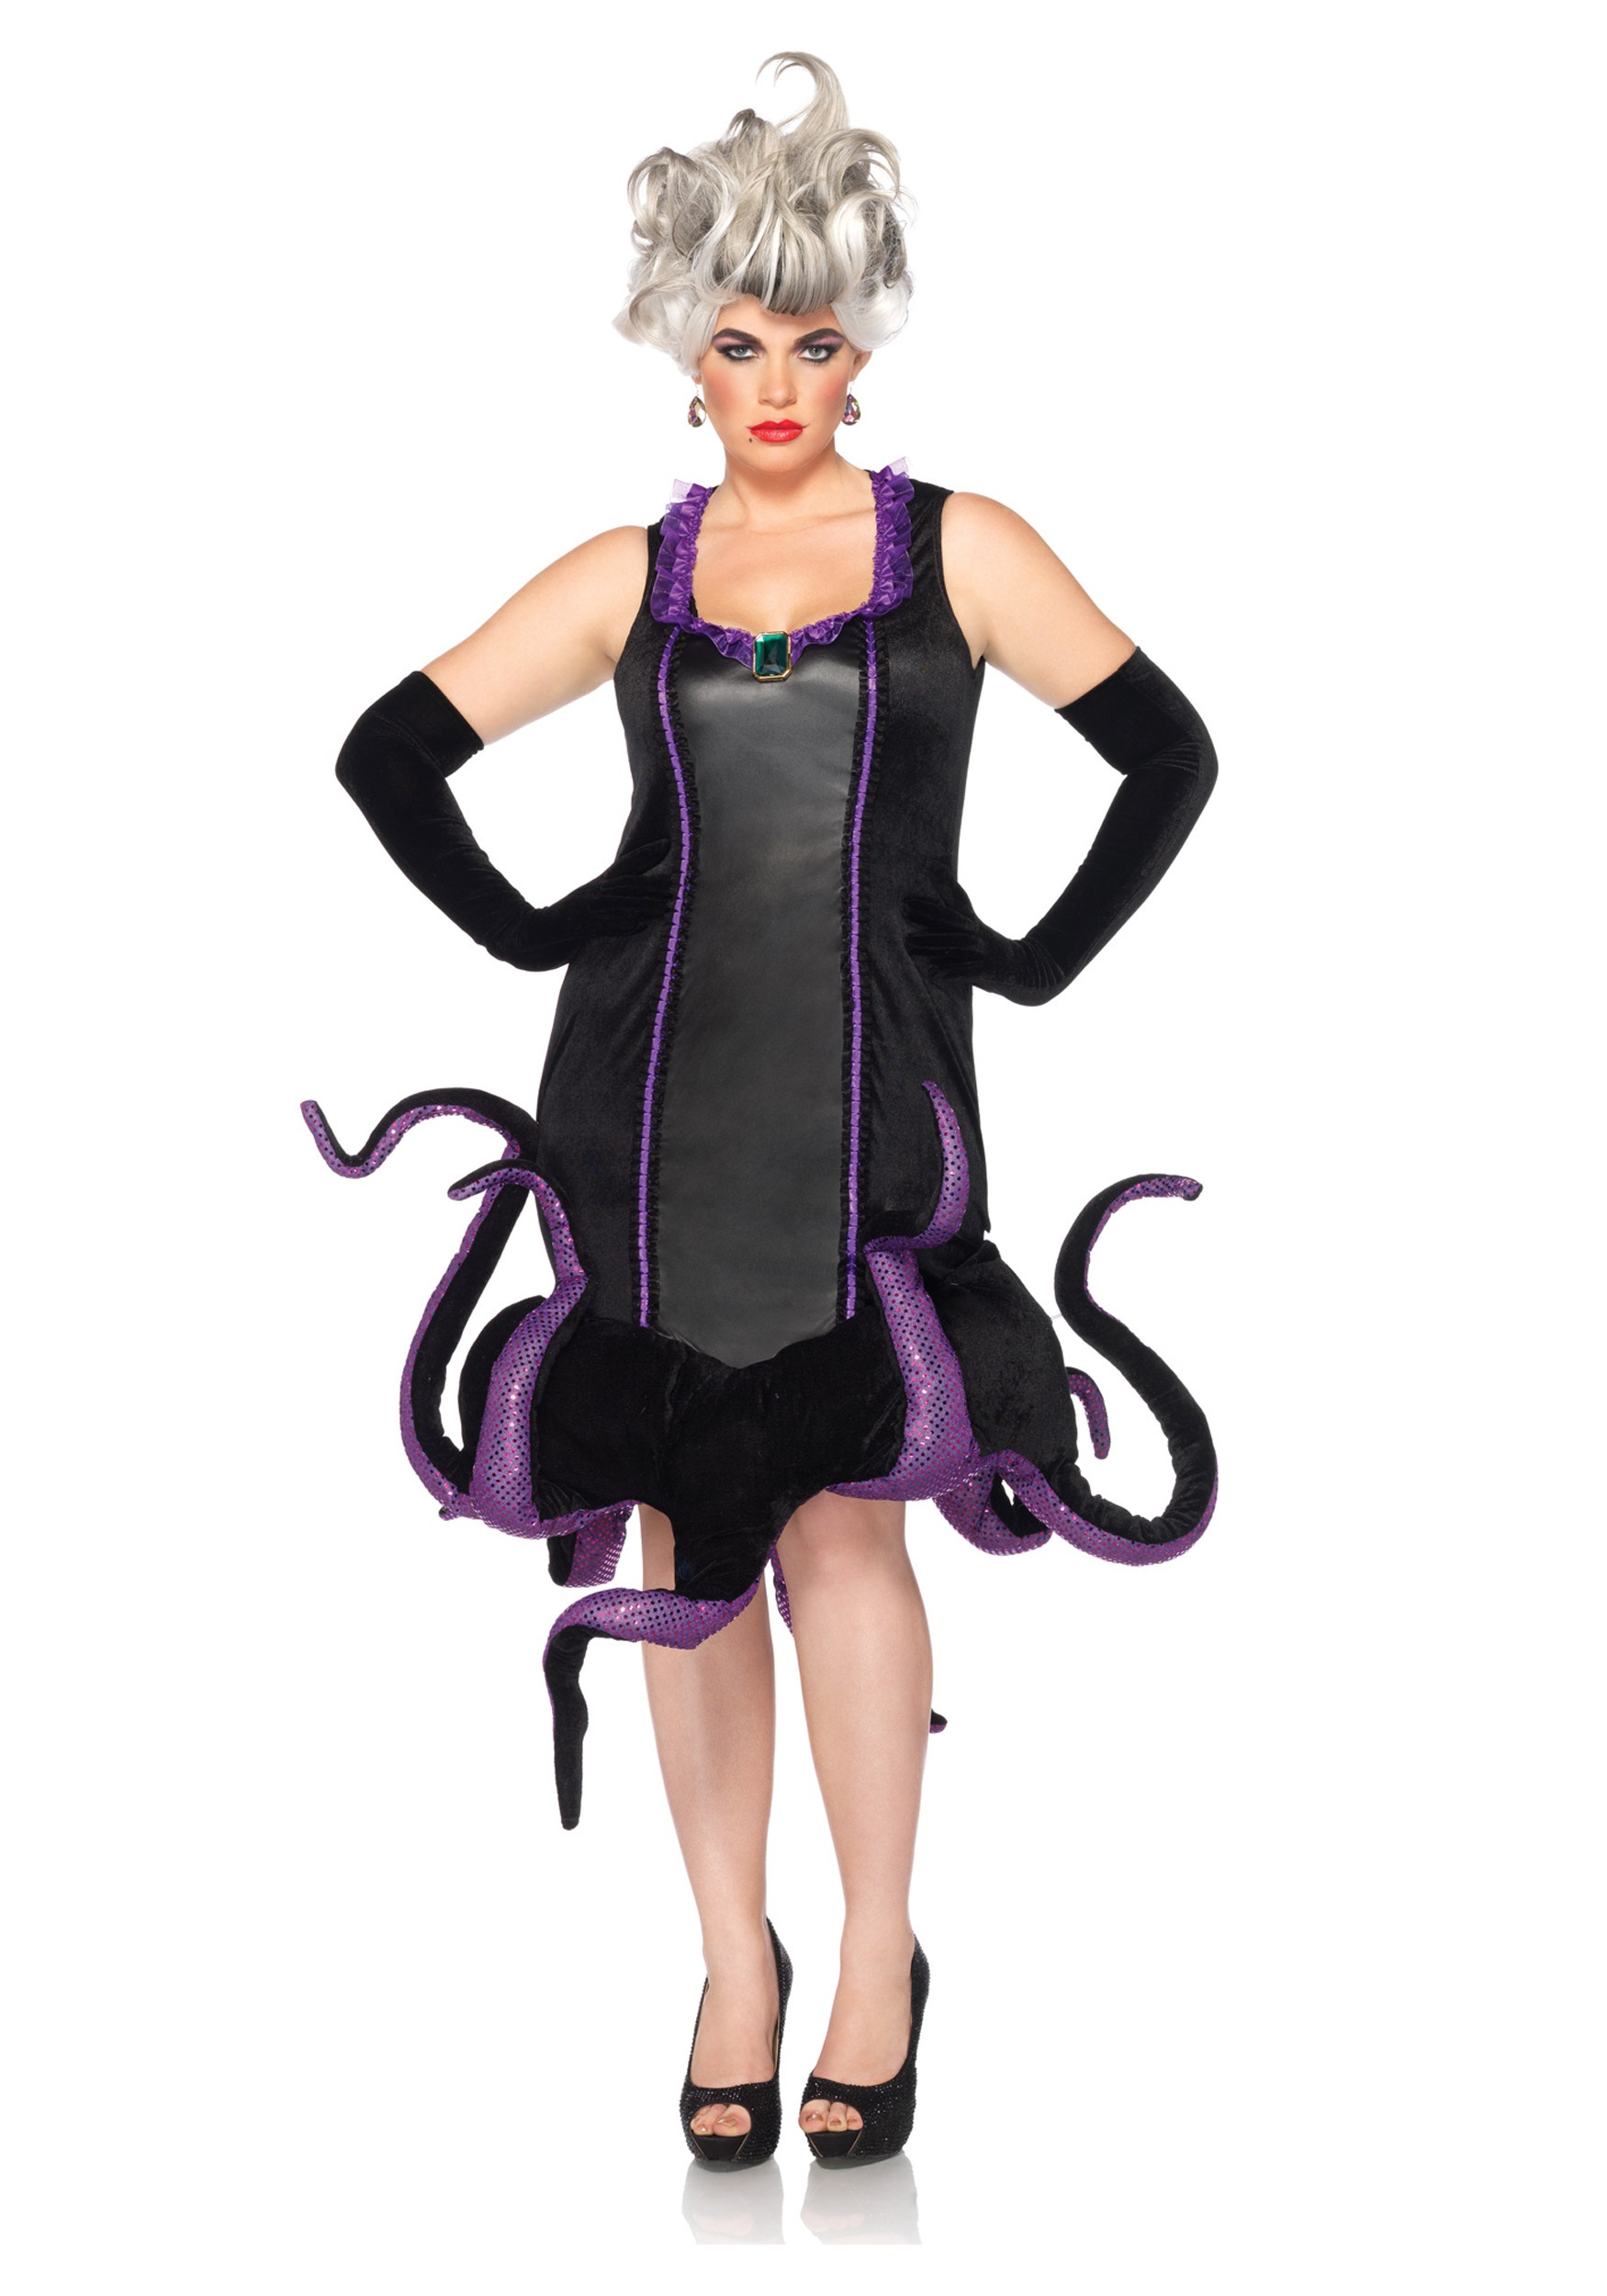 sc 1 st  Halloween Costumes & Womens Disney Plus Ursula Costume - Halloween Costume Ideas 2018